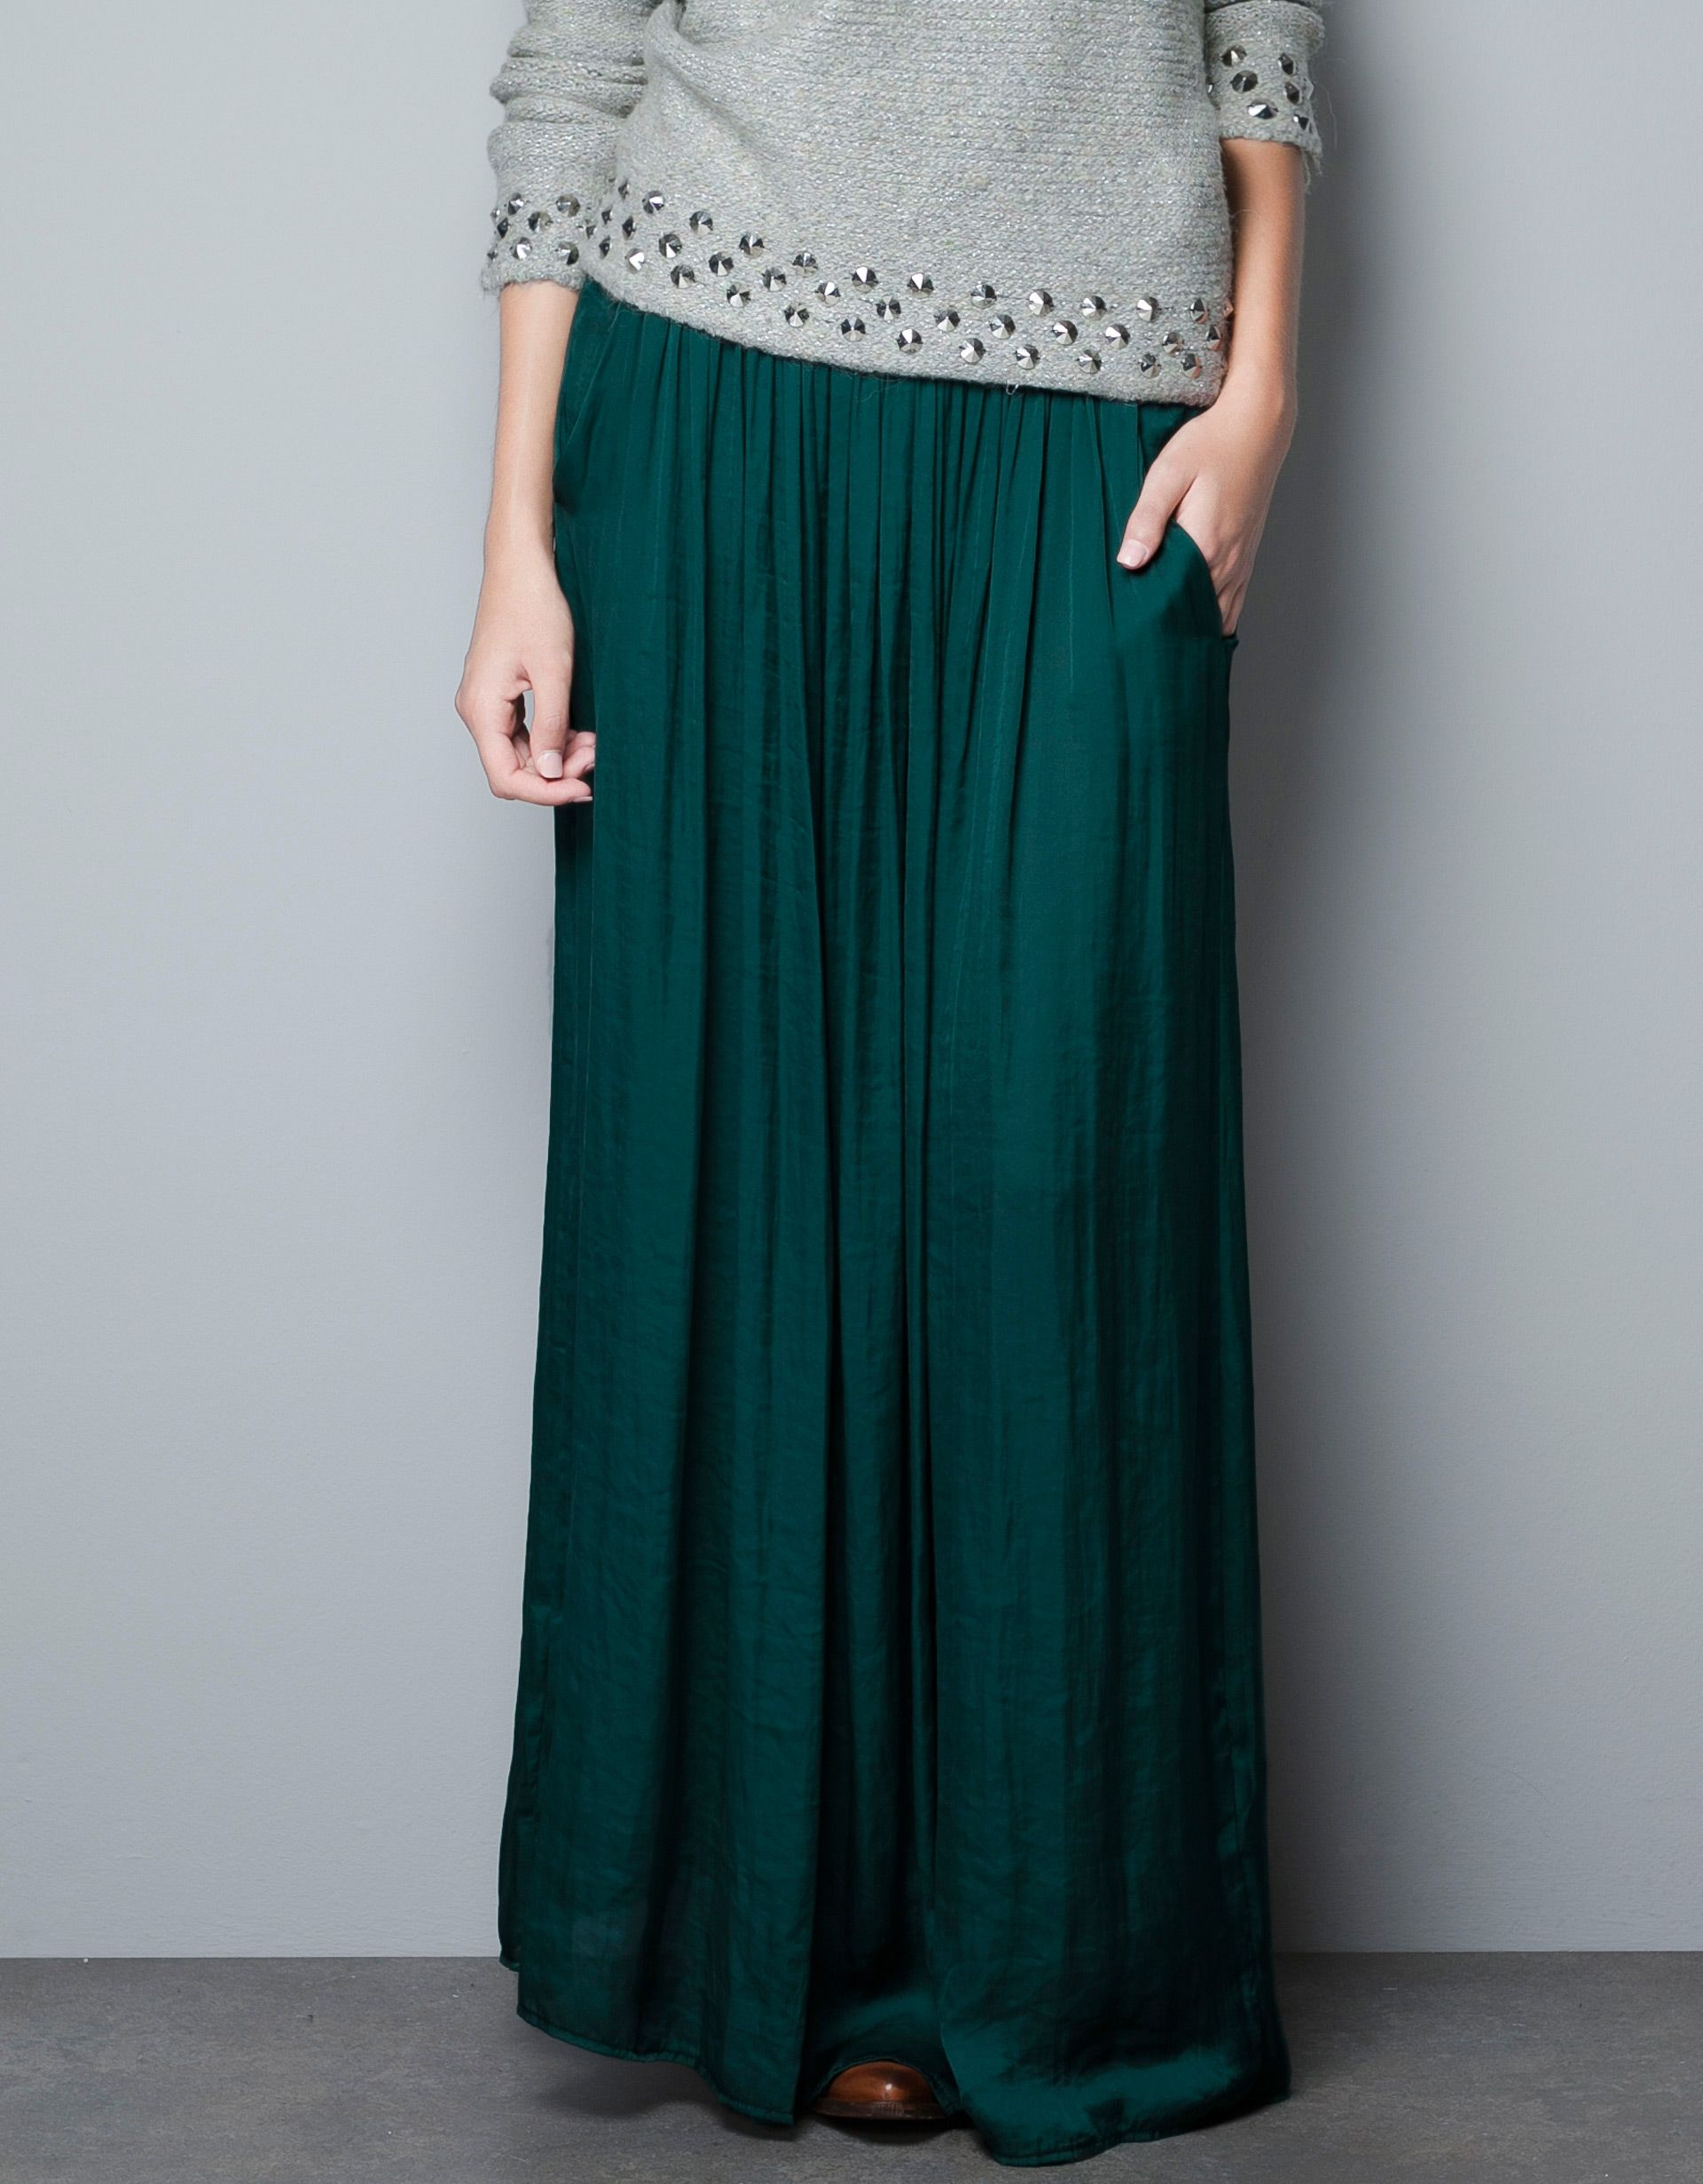 LONG SKIRT WITH POCKETS - Skirts - Woman - ZARA | I Dress to ...